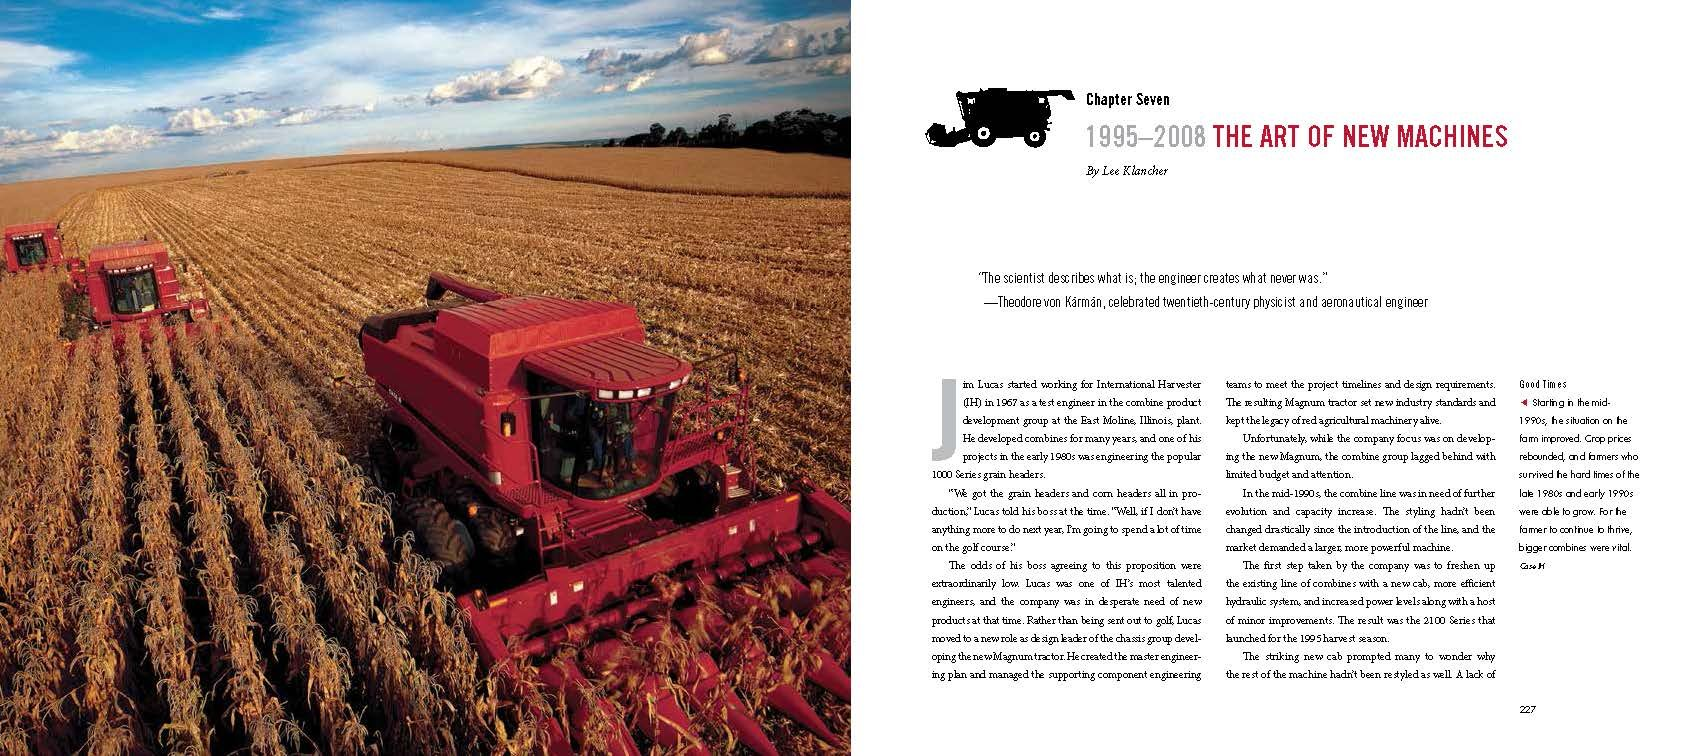 Red Combines 1915-2015: The Authoritative Guide to International Harvester and Case IH Combines and Harvesting Equipment by Octane Press LLC (Image #8)